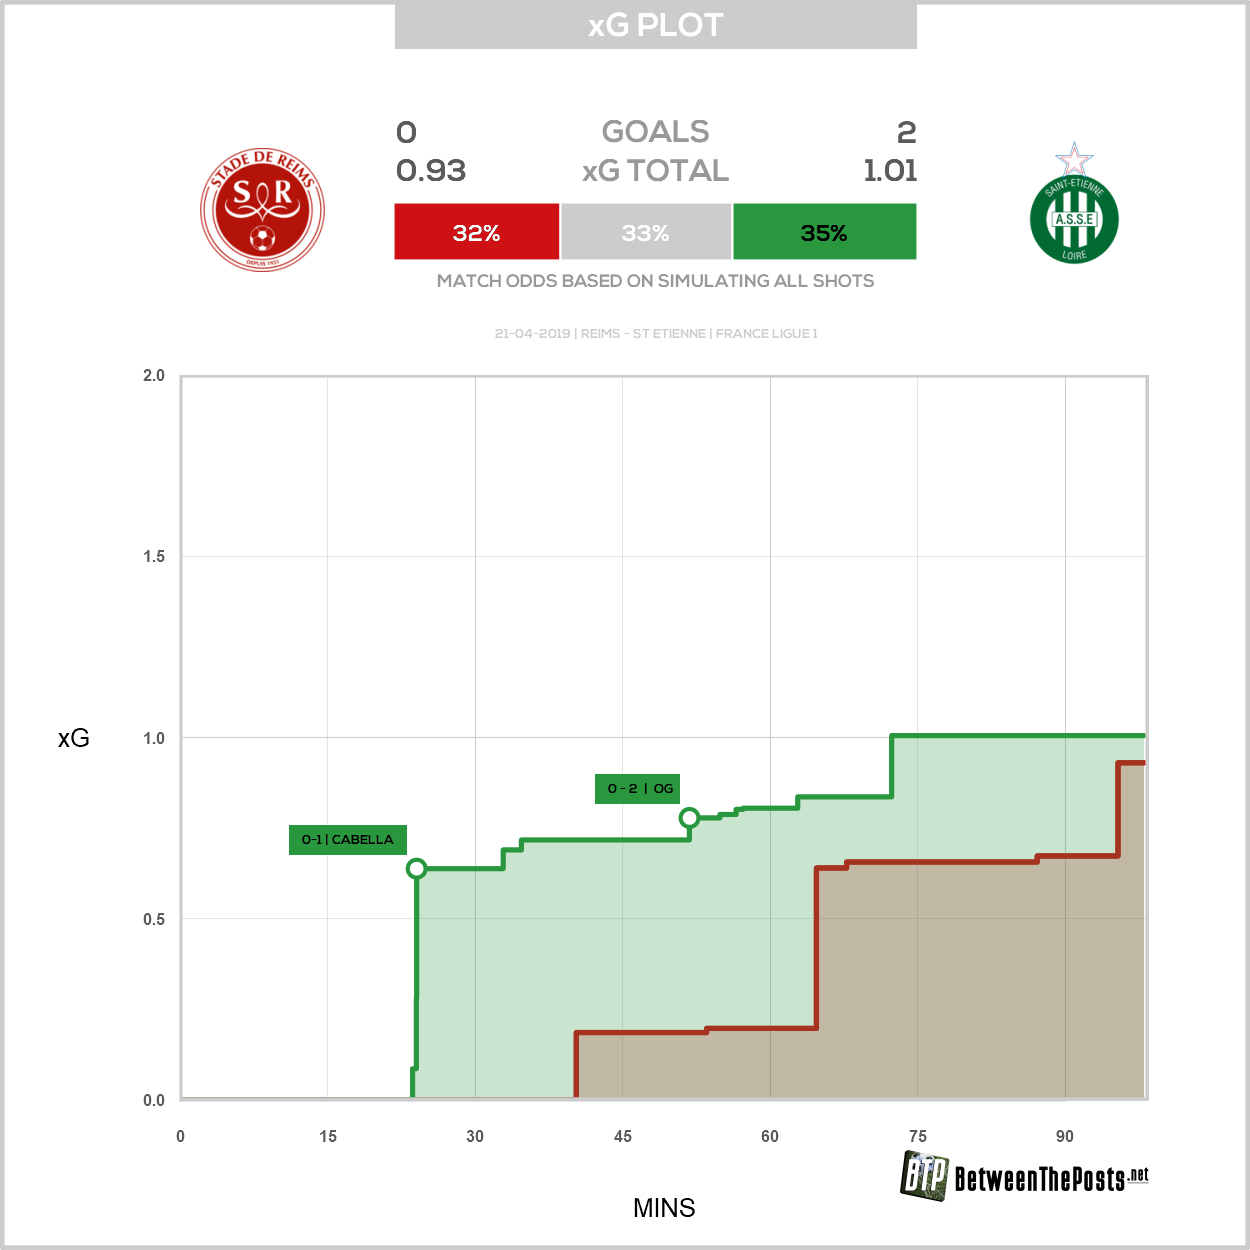 Expected goals plot Stade de Reims Saint-Étienne 0-2 Ligue 1